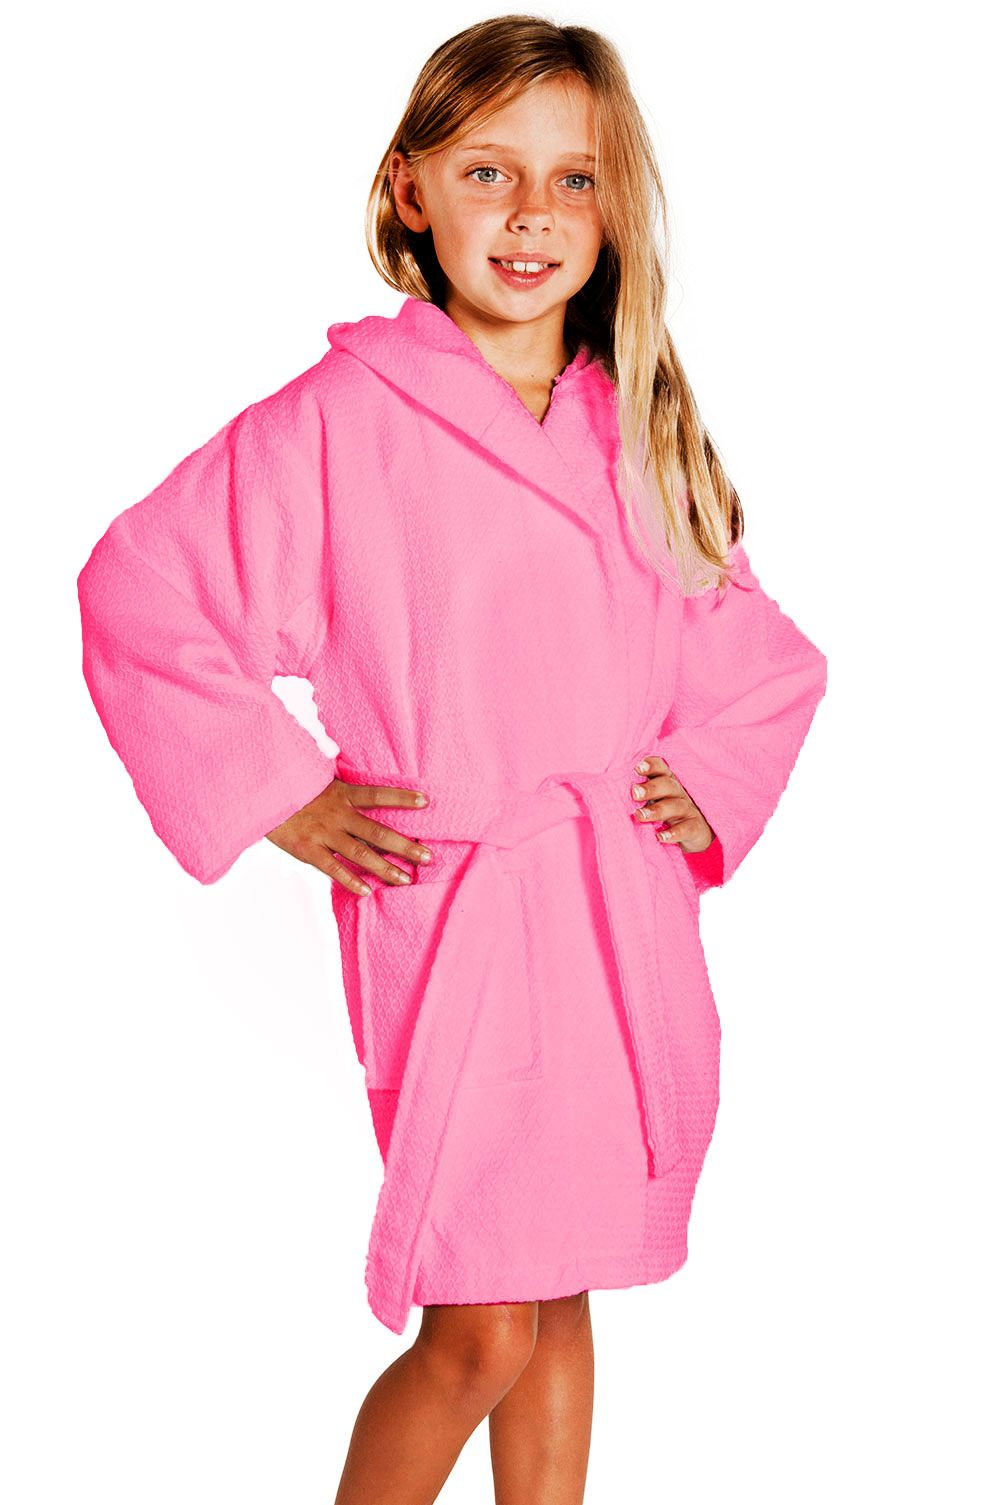 Kids Bathrobes    Kids Hooded Waffle Fuchsia 100% Cotton Bathrobe -  Wholesale bathrobes ca41cf10f